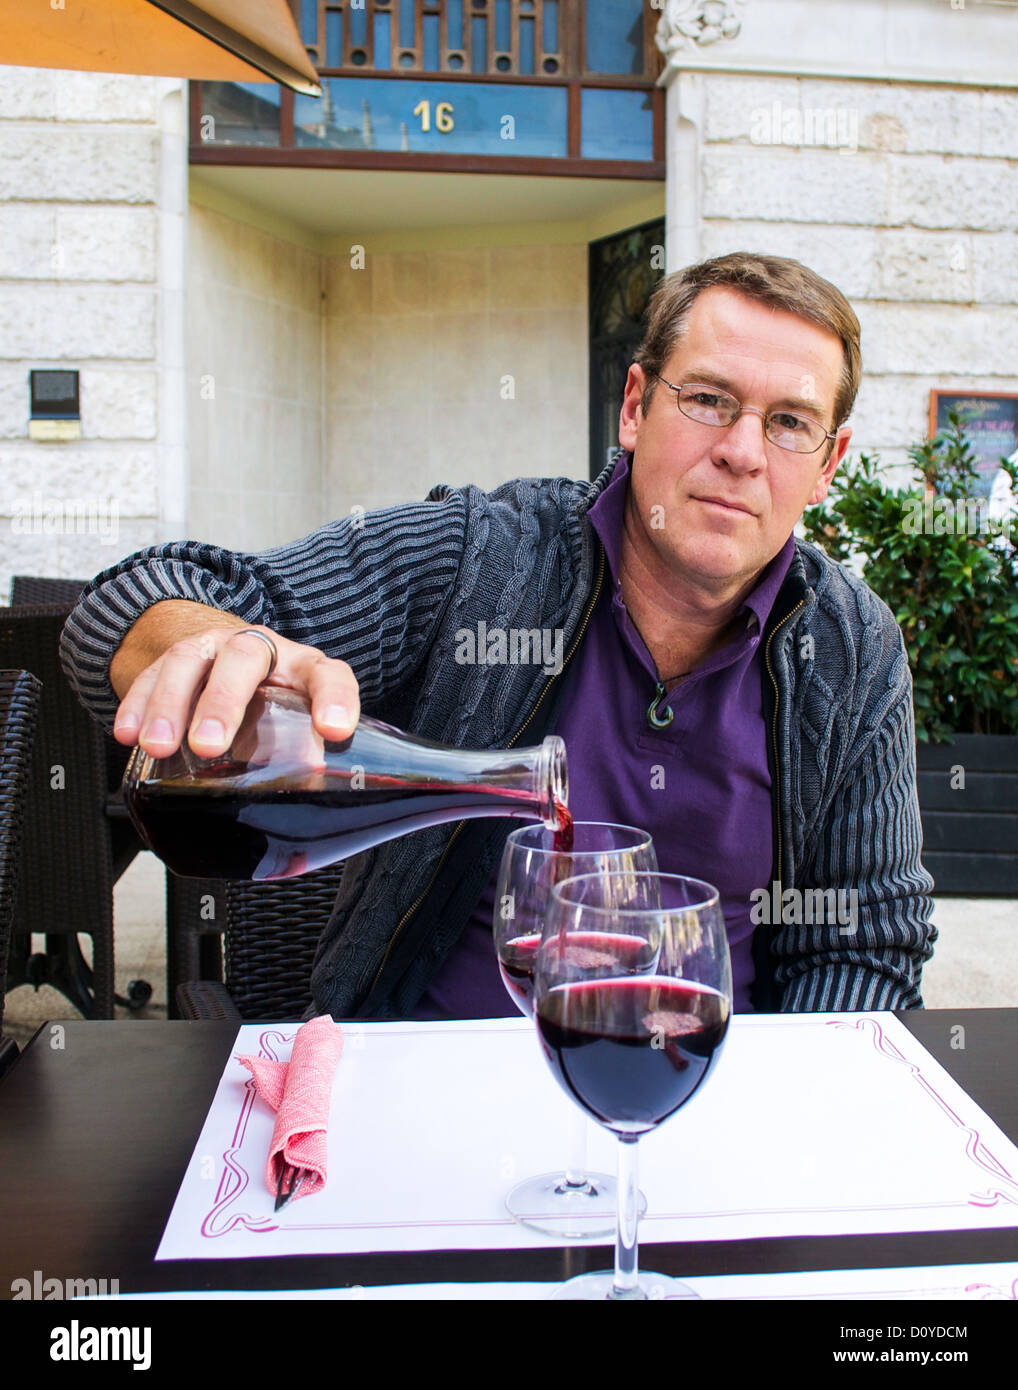 Man pouring a glass of red wine at a sidewalk cafe in Spain. - Stock Image